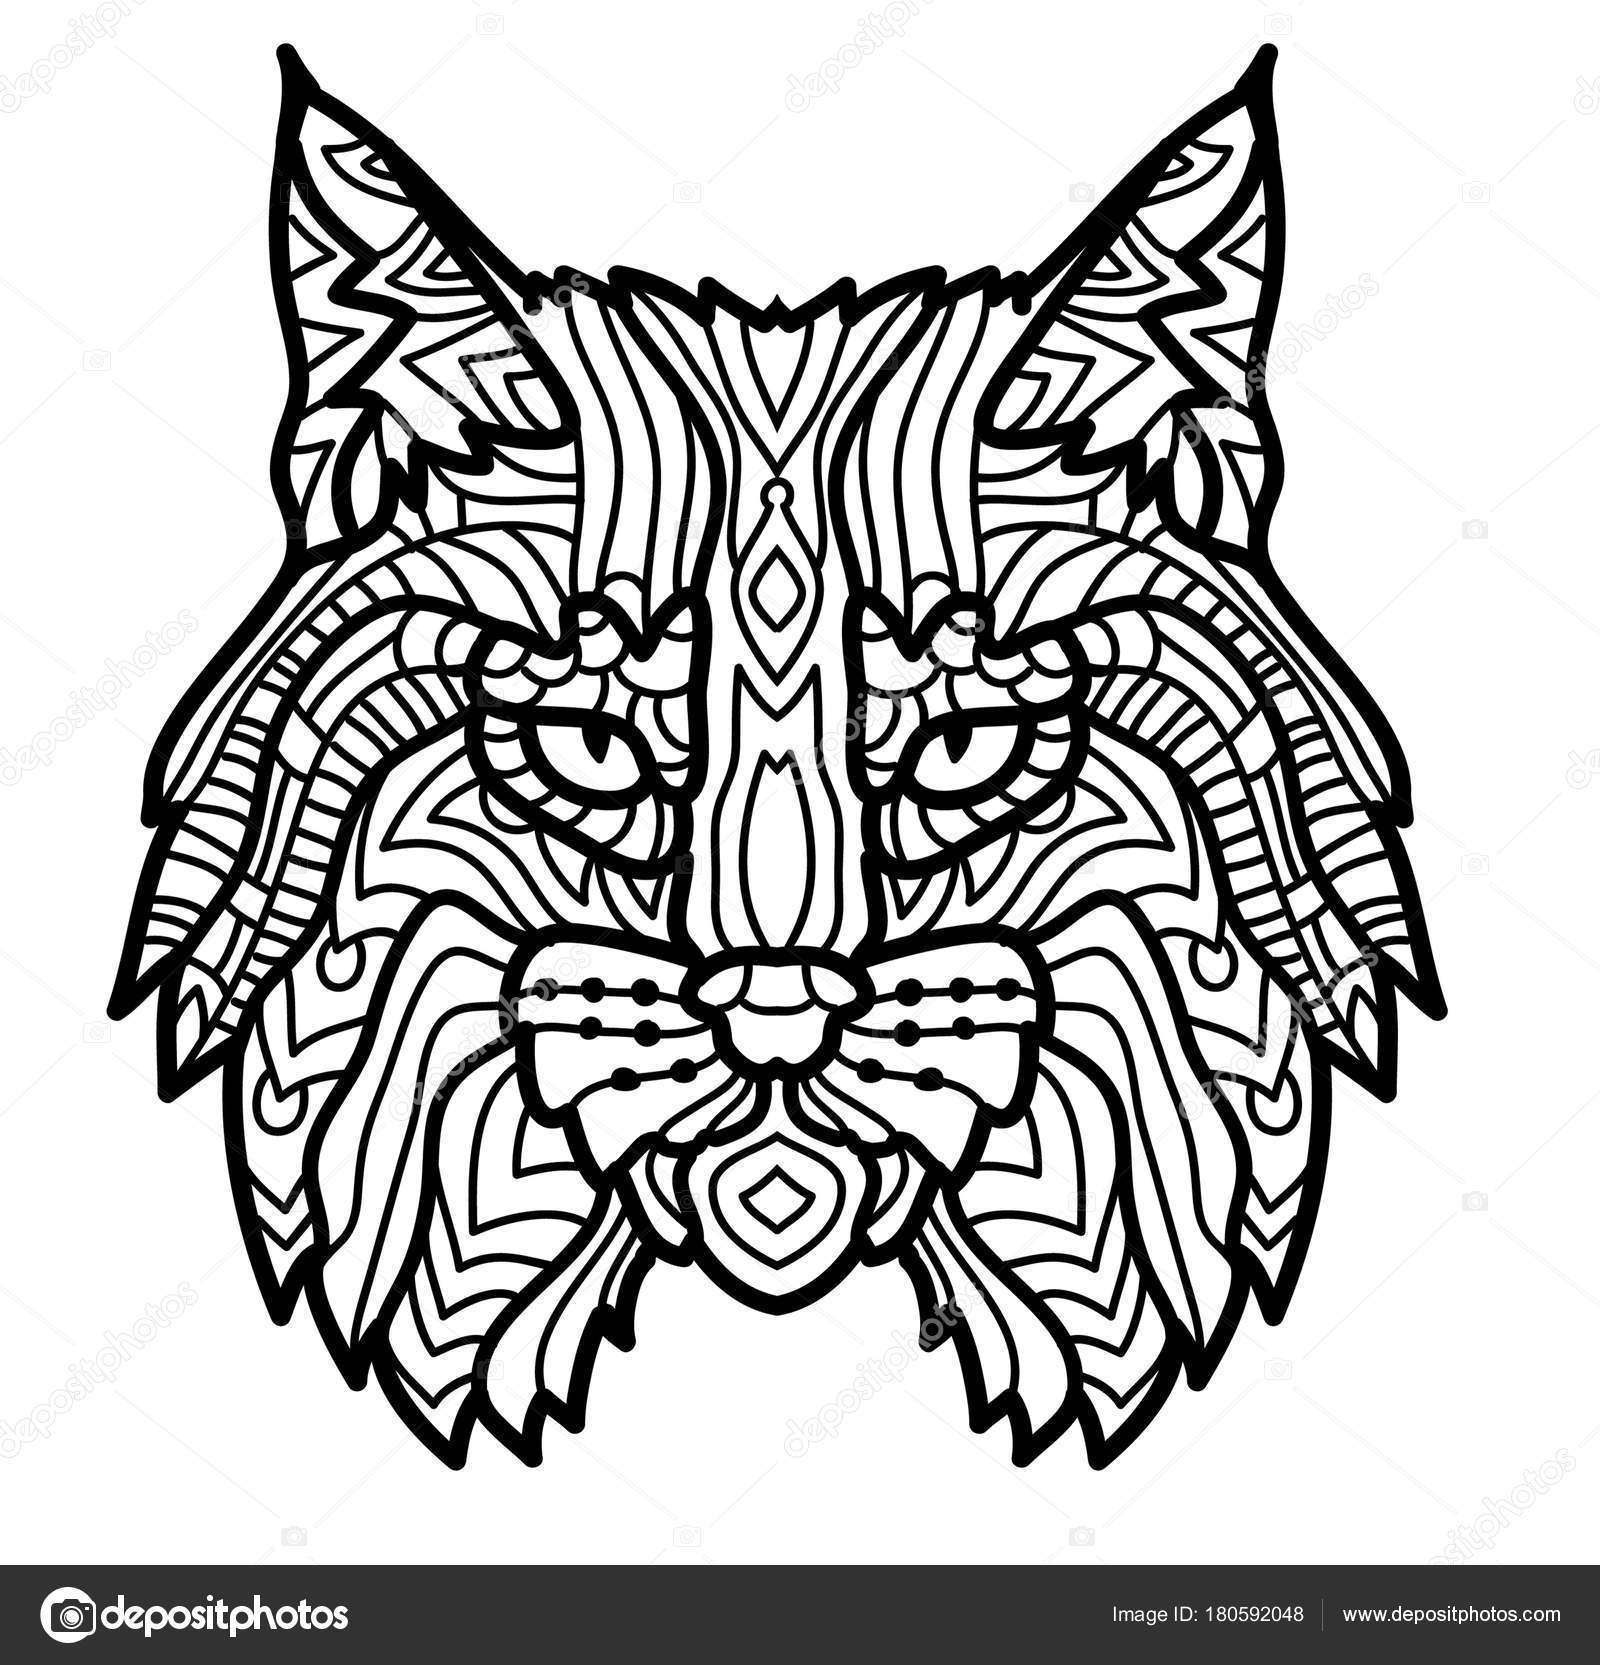 Hand Drawn Lynx Head Animal Isolated. Doodle Line Graphic avec Dessin Noir Et Blanc Animaux